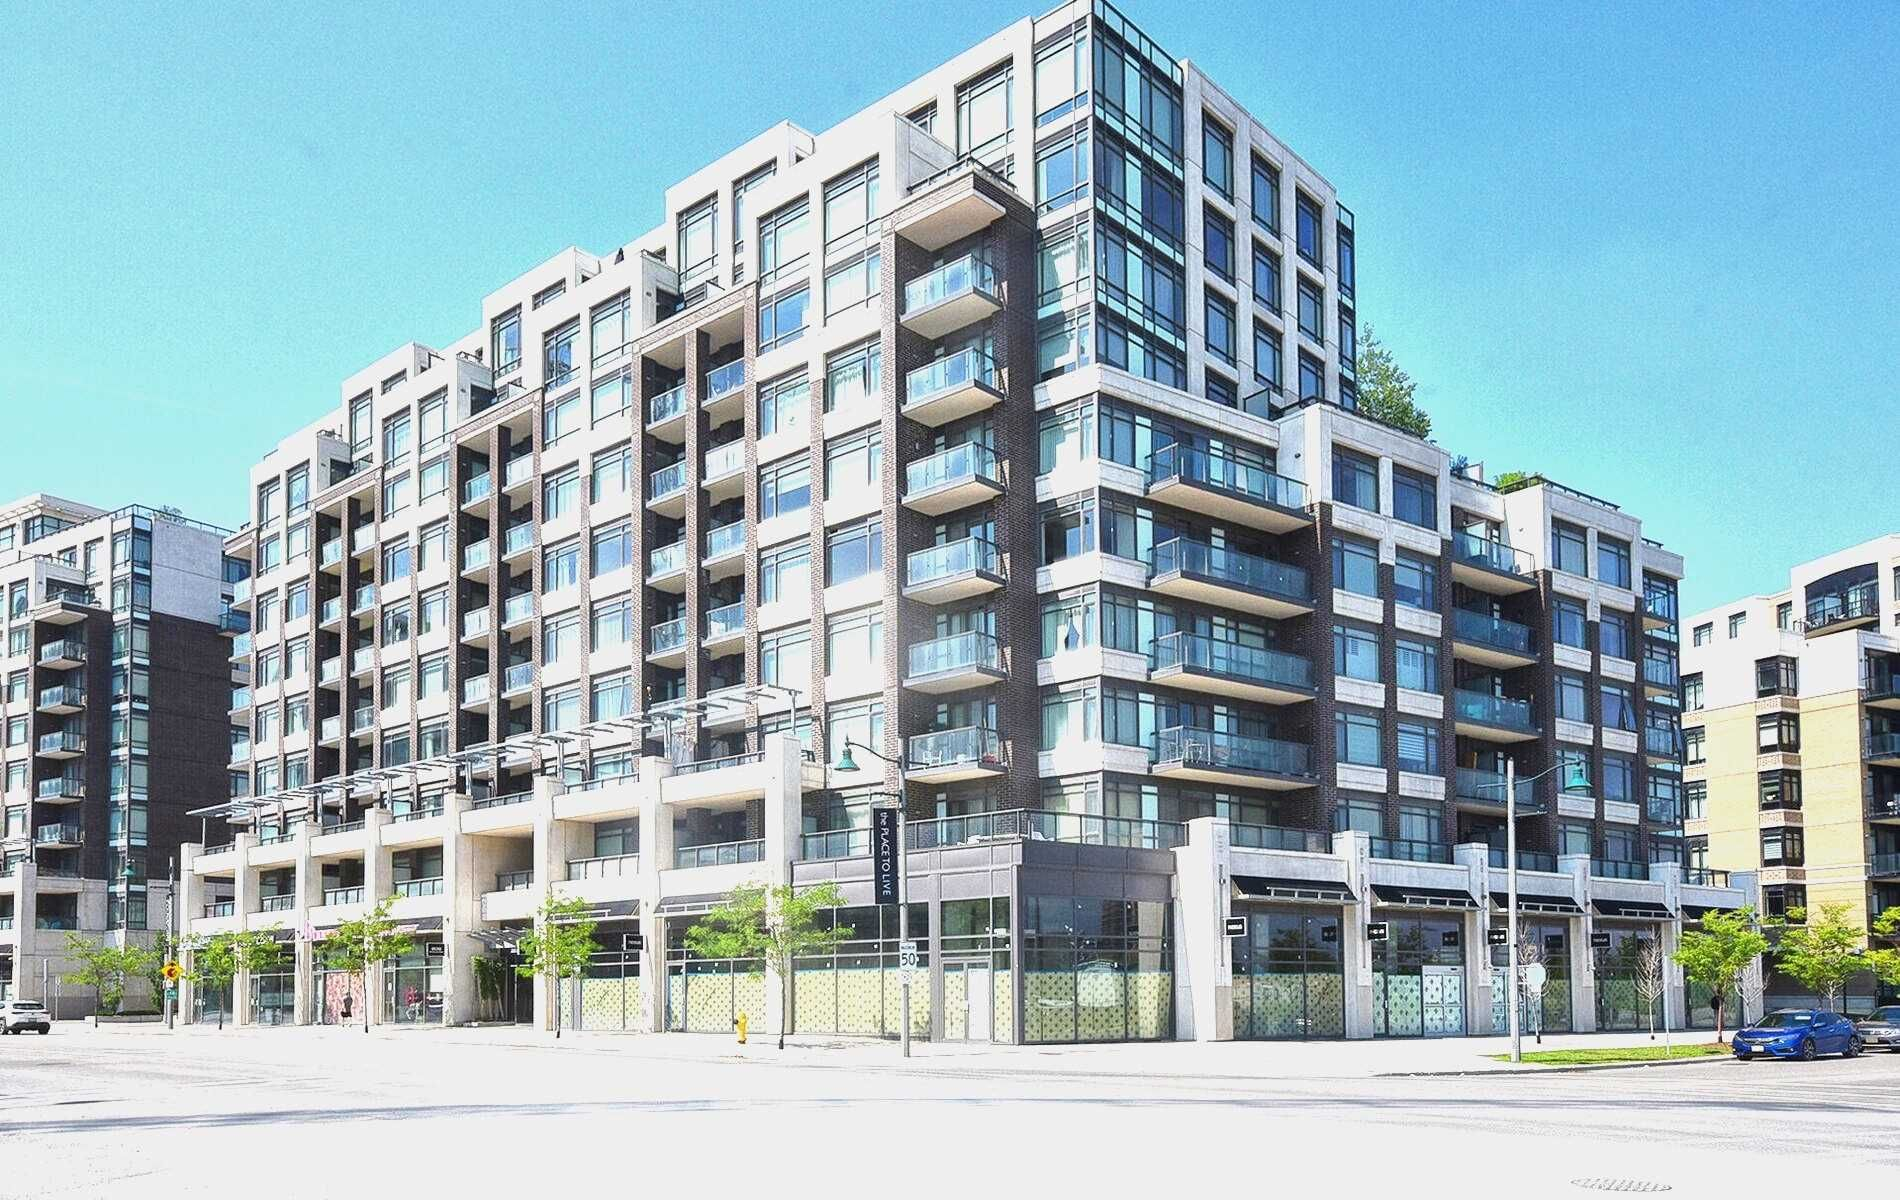 8130 Birchmount Rd, unit 1008 for sale in Toronto - image #1